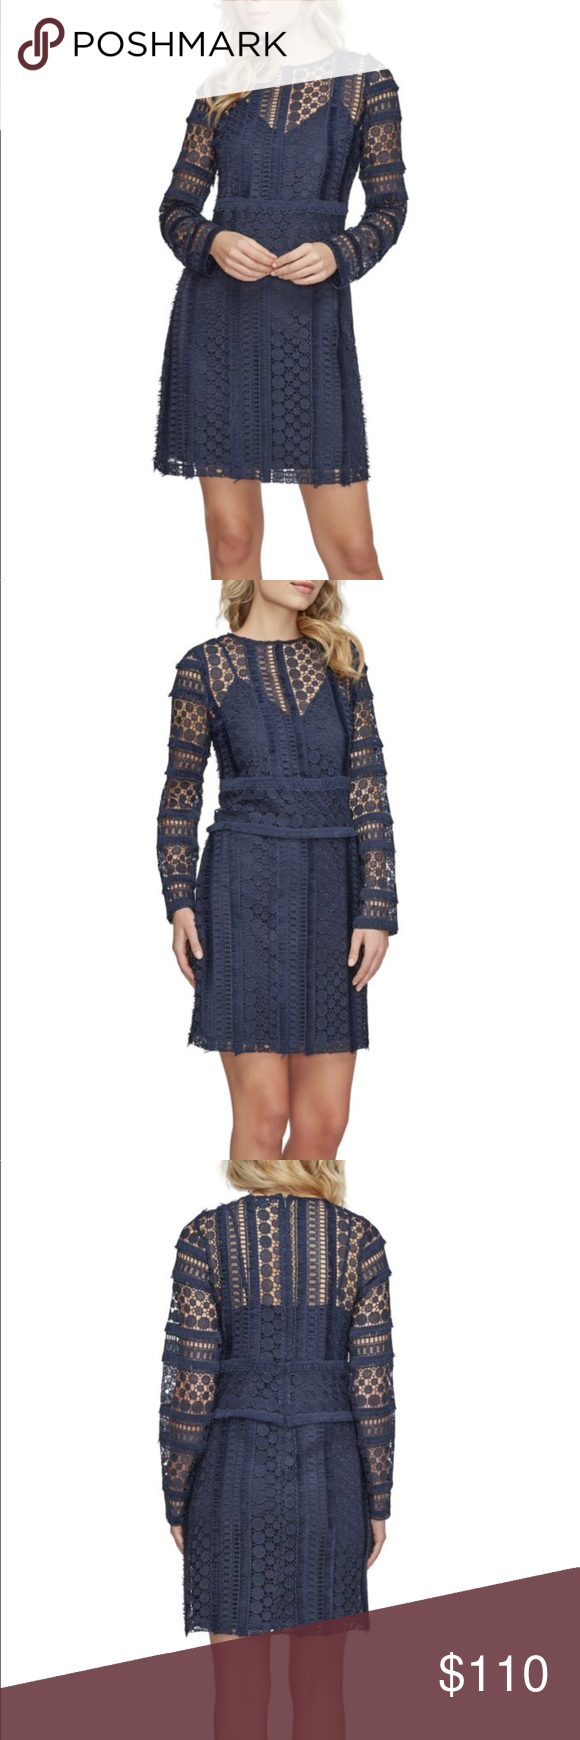 9bebd5568c1e9 Sam Edelman size 14 navy lace shift dress NWT Brand new with tags. Navy